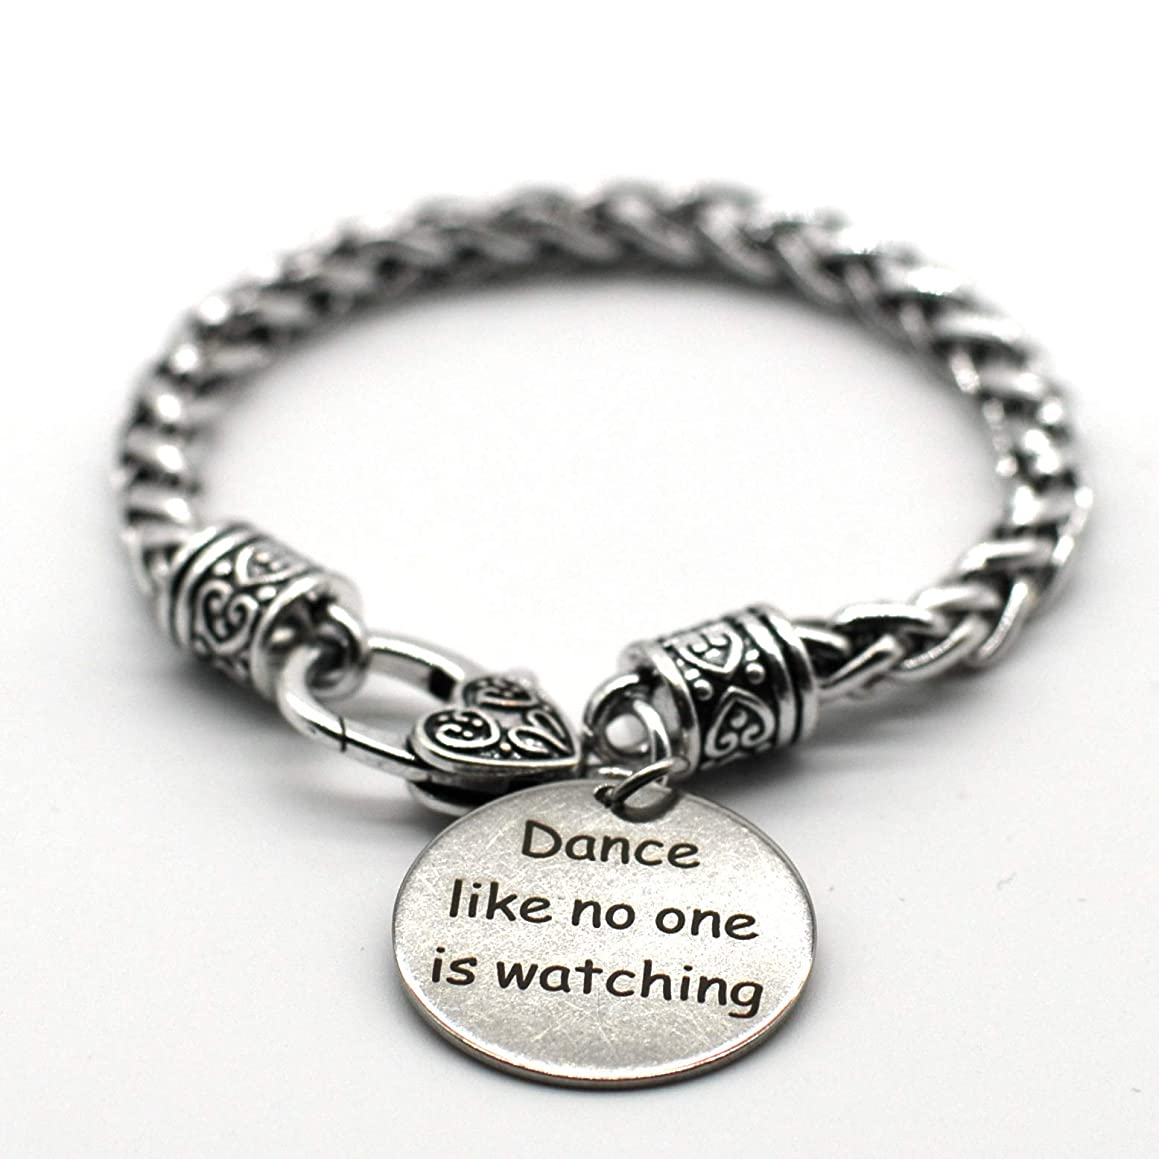 M&T 2015 Stainless Steel Charm Inspiration Jewelry, Dance Like No One is Watching, 17